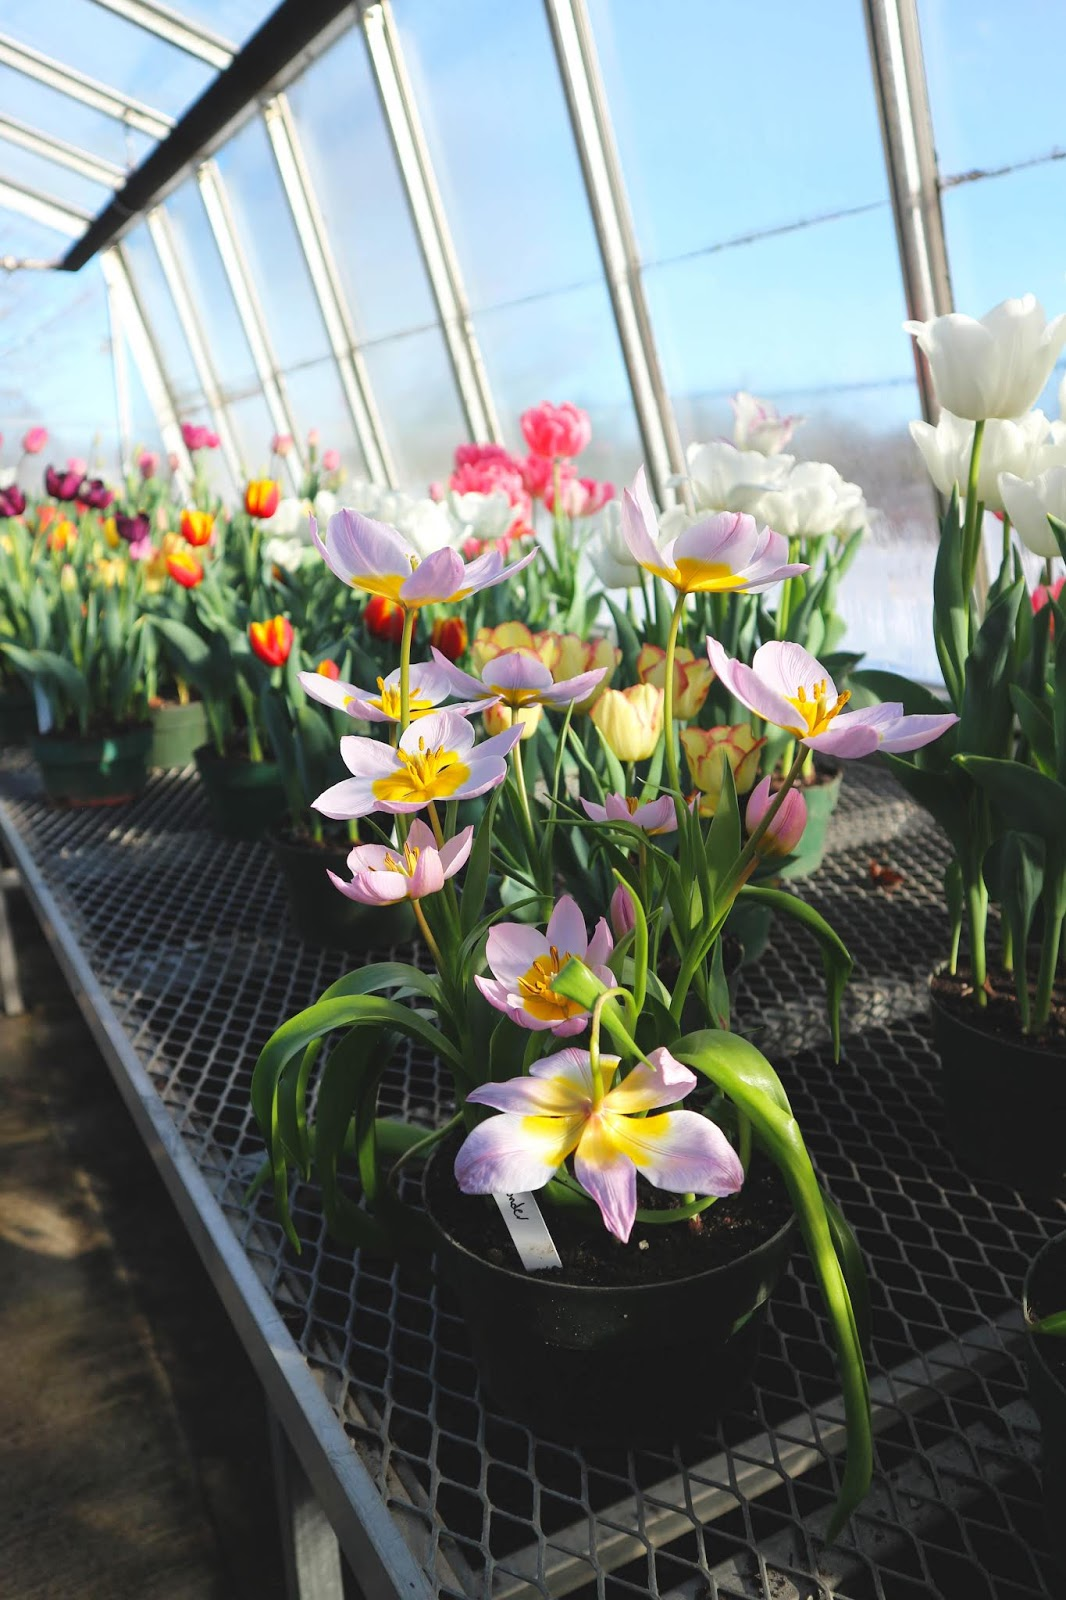 Celebrating Spring at City of Kingston Greenhouse